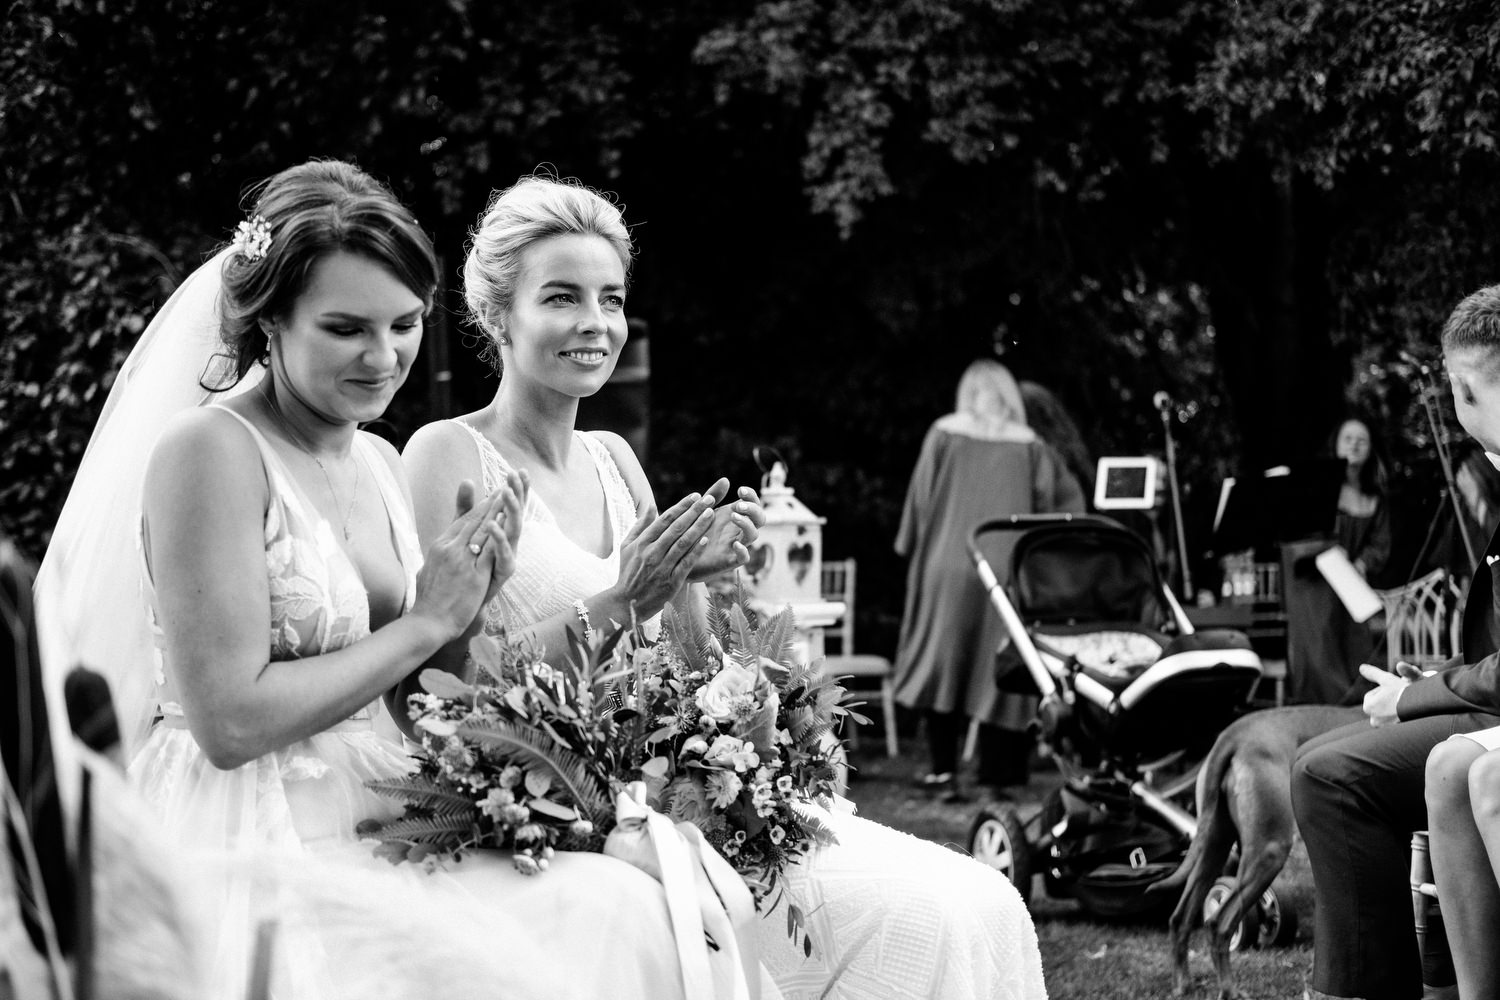 dmp0473_candid_brides_gay_ballintubbert_photography_ireland_ceremony_laois_documentary_outdoor_relaxed_twobrides_wedding_samesex_house_fun